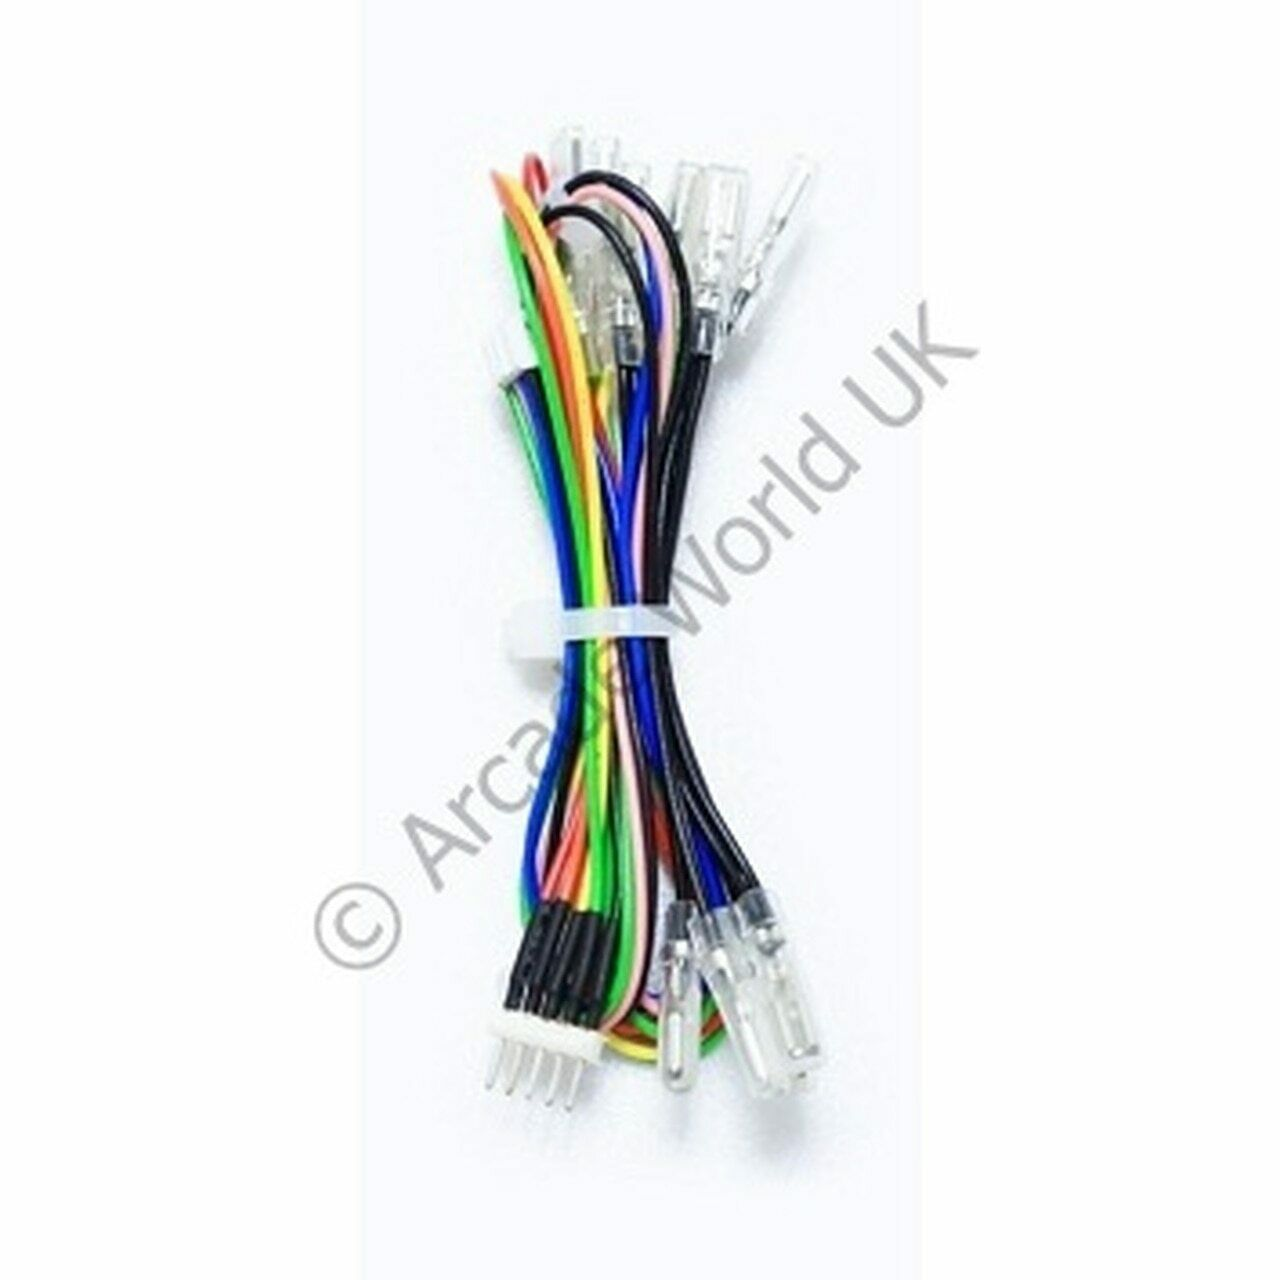 Brook Fighting Board Cable & Hitbox Cable For Universal Fighting Board